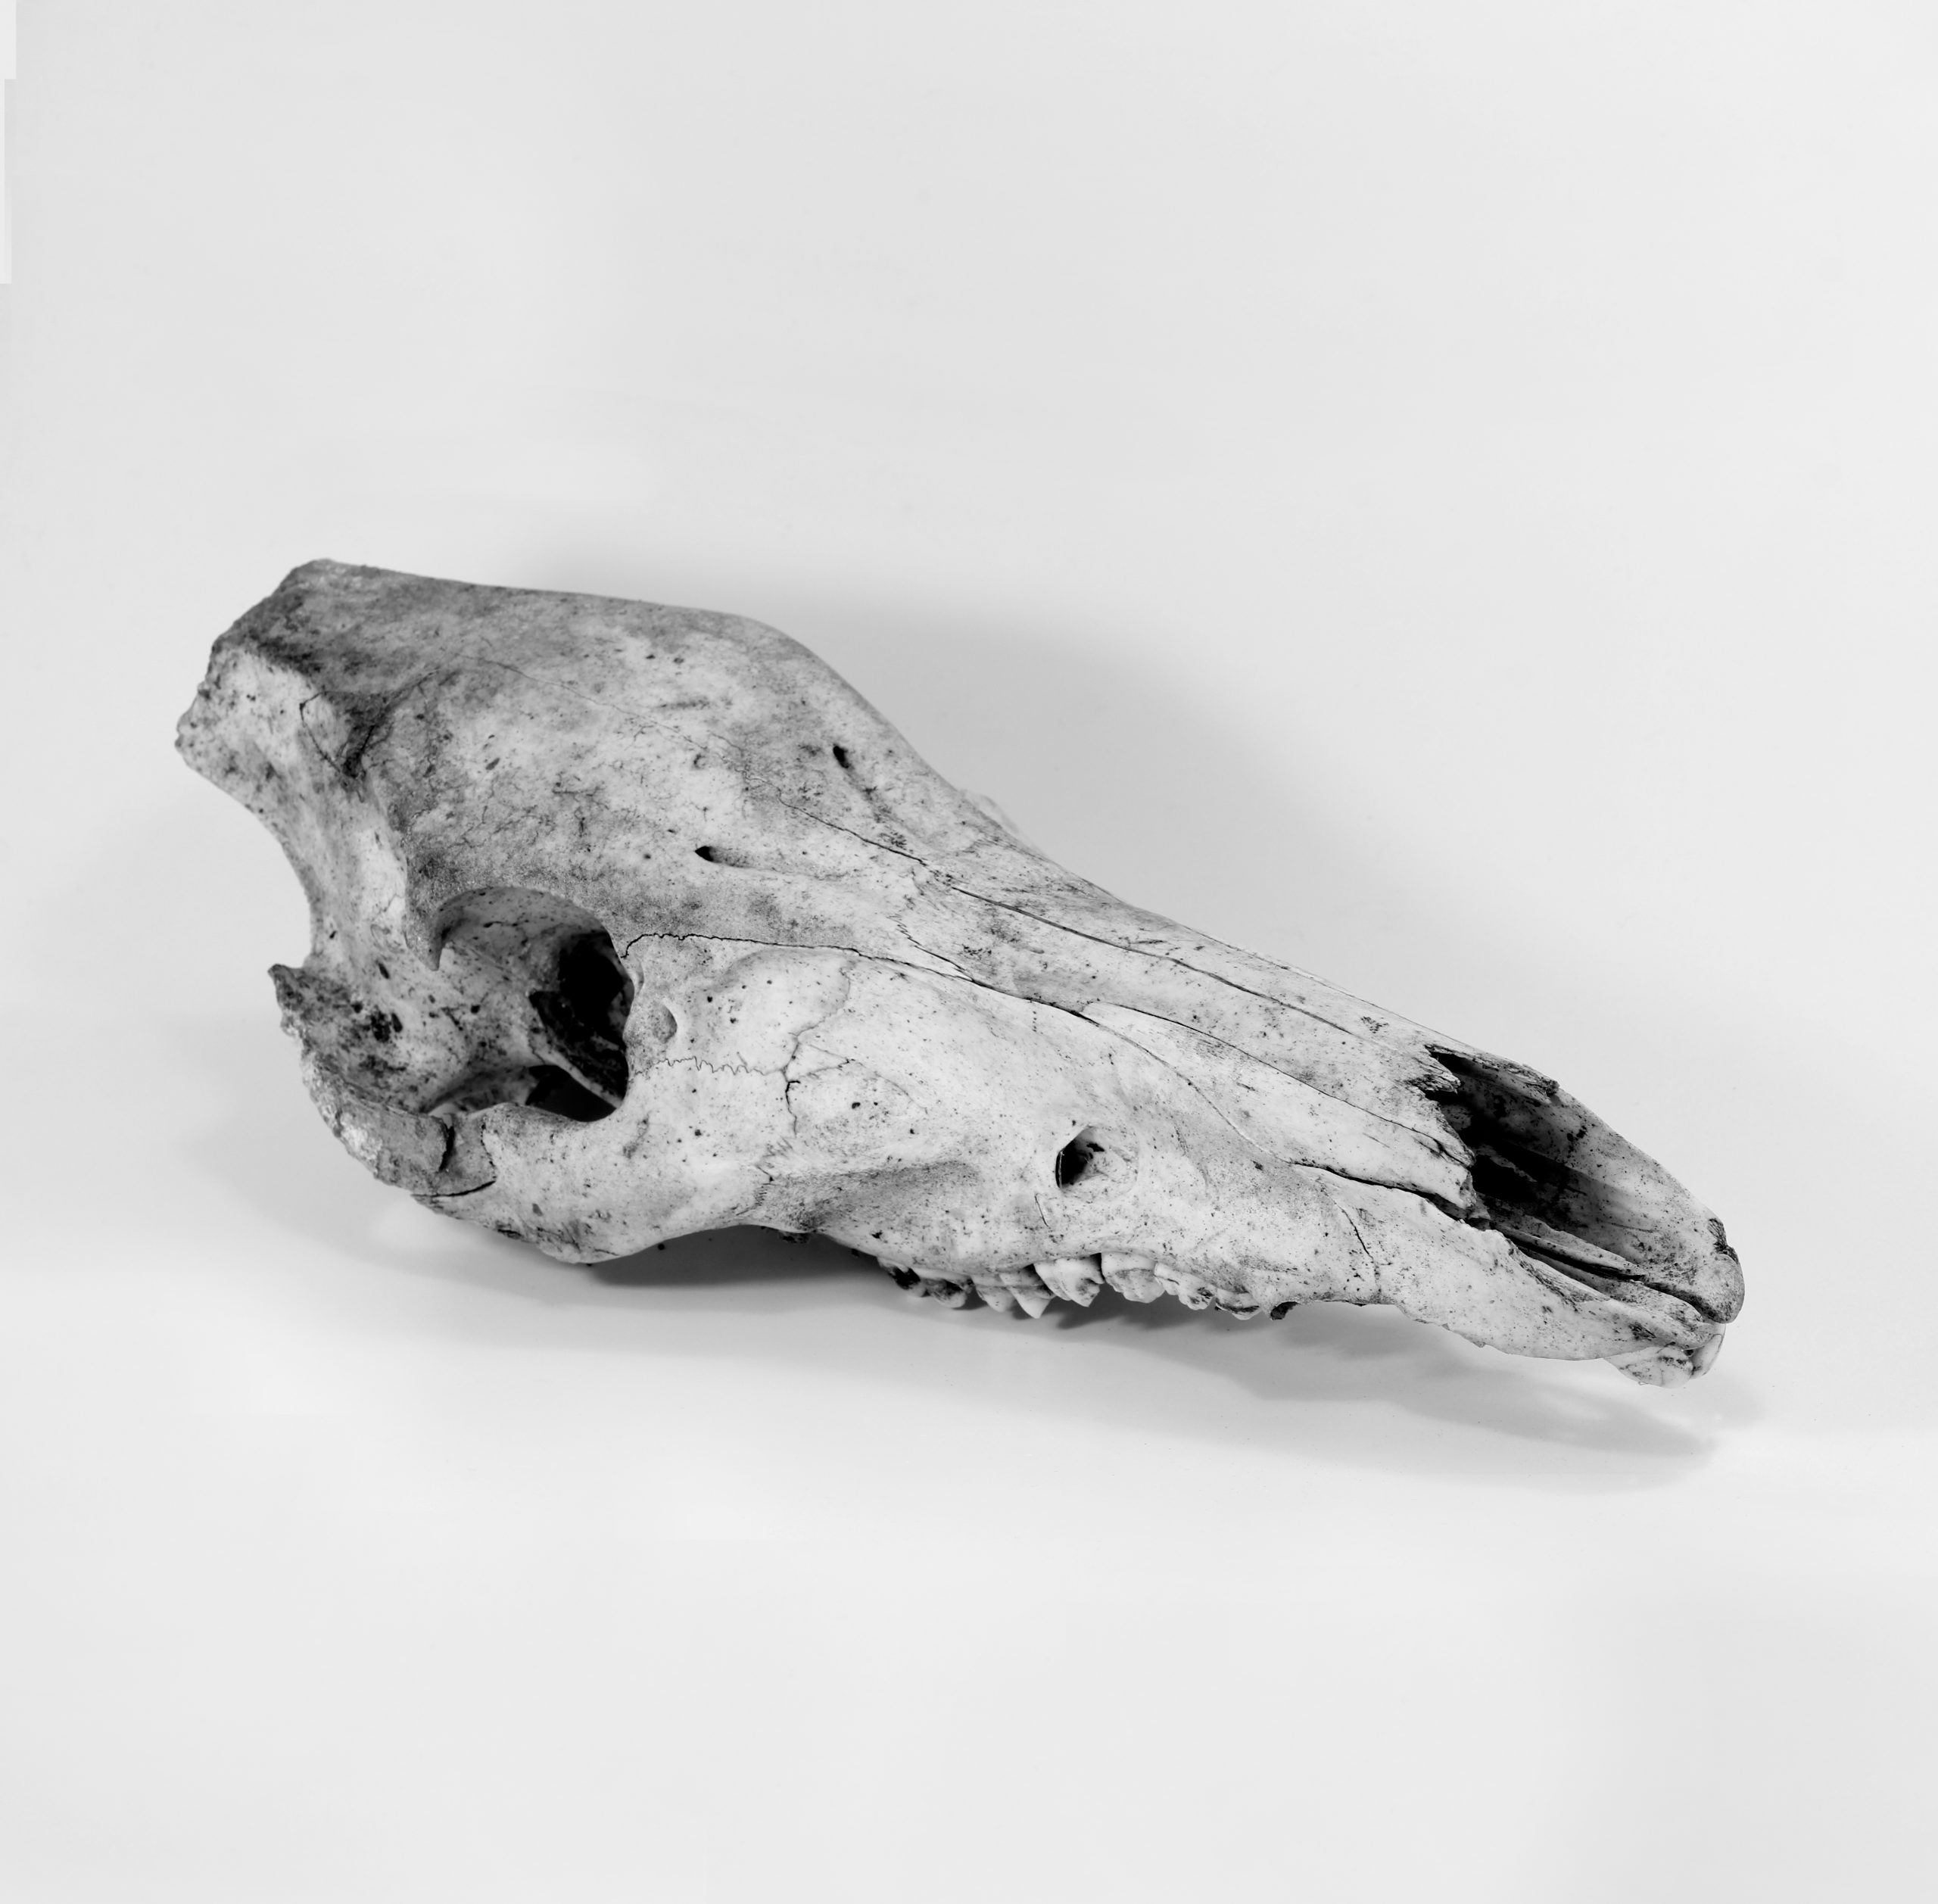 Wild boar skull. Photo: Art Pictures/Shutterstock